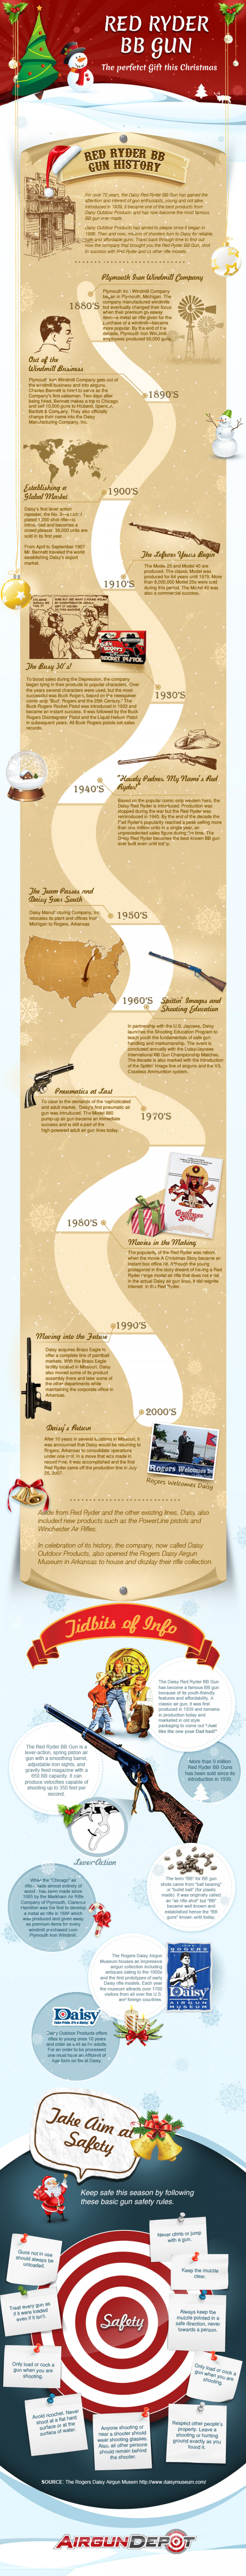 History of the Red Ryder BB Gun Infographic